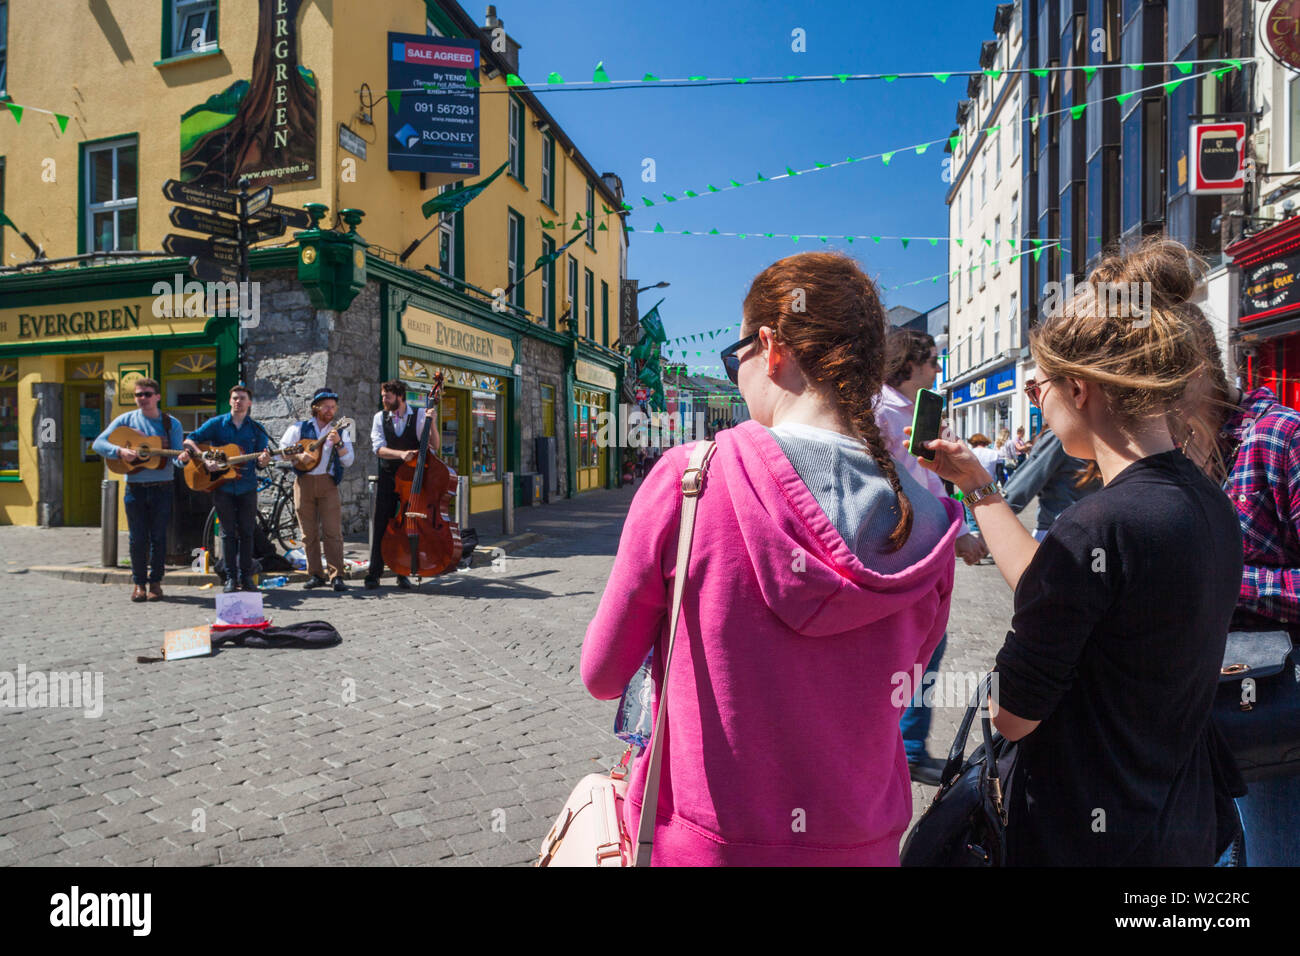 Ireland, County Galway, Galway City, High Street, musicians and